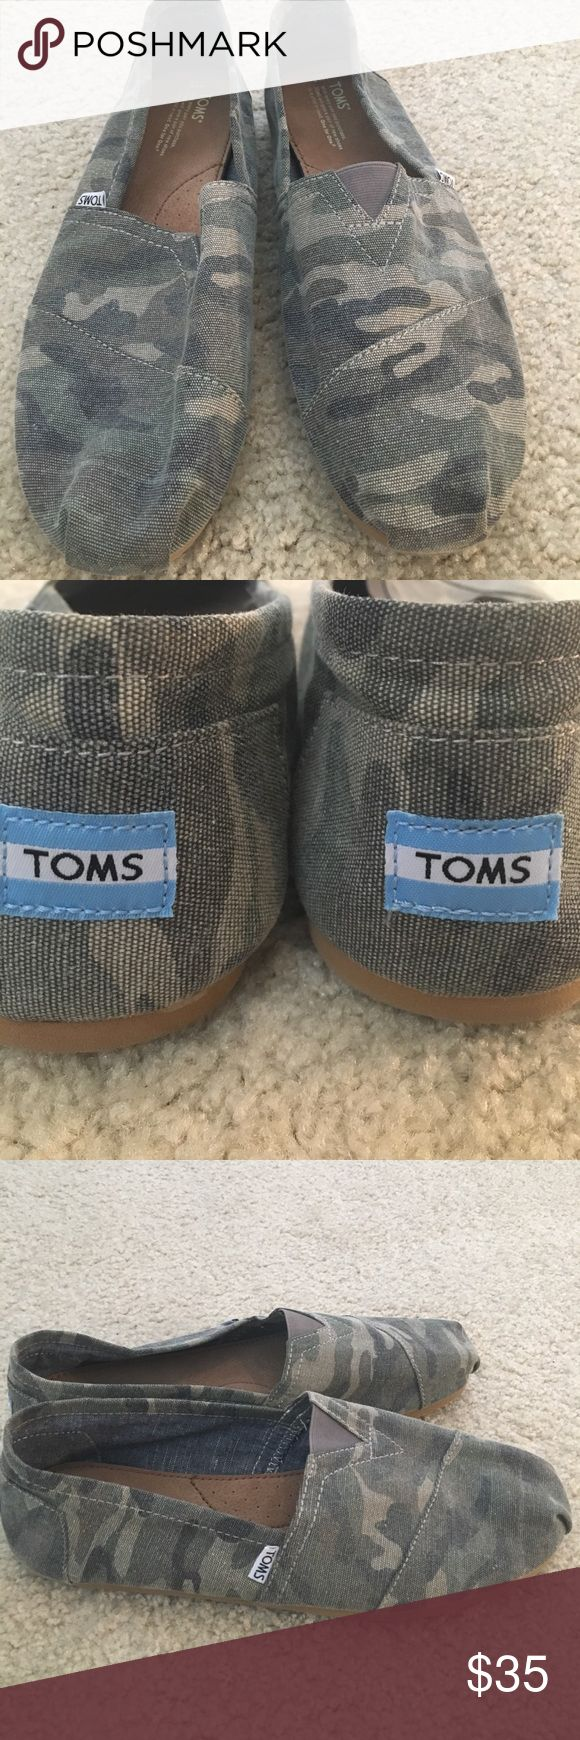 NEW Men's Camo TOMS - Size 13 Brand new Men's camouflage TOMS. Size 13. Trendy for the Spring and Summer! HOT look. #mensstyle #GQ TOMS Shoes Loafers & Slip-Ons